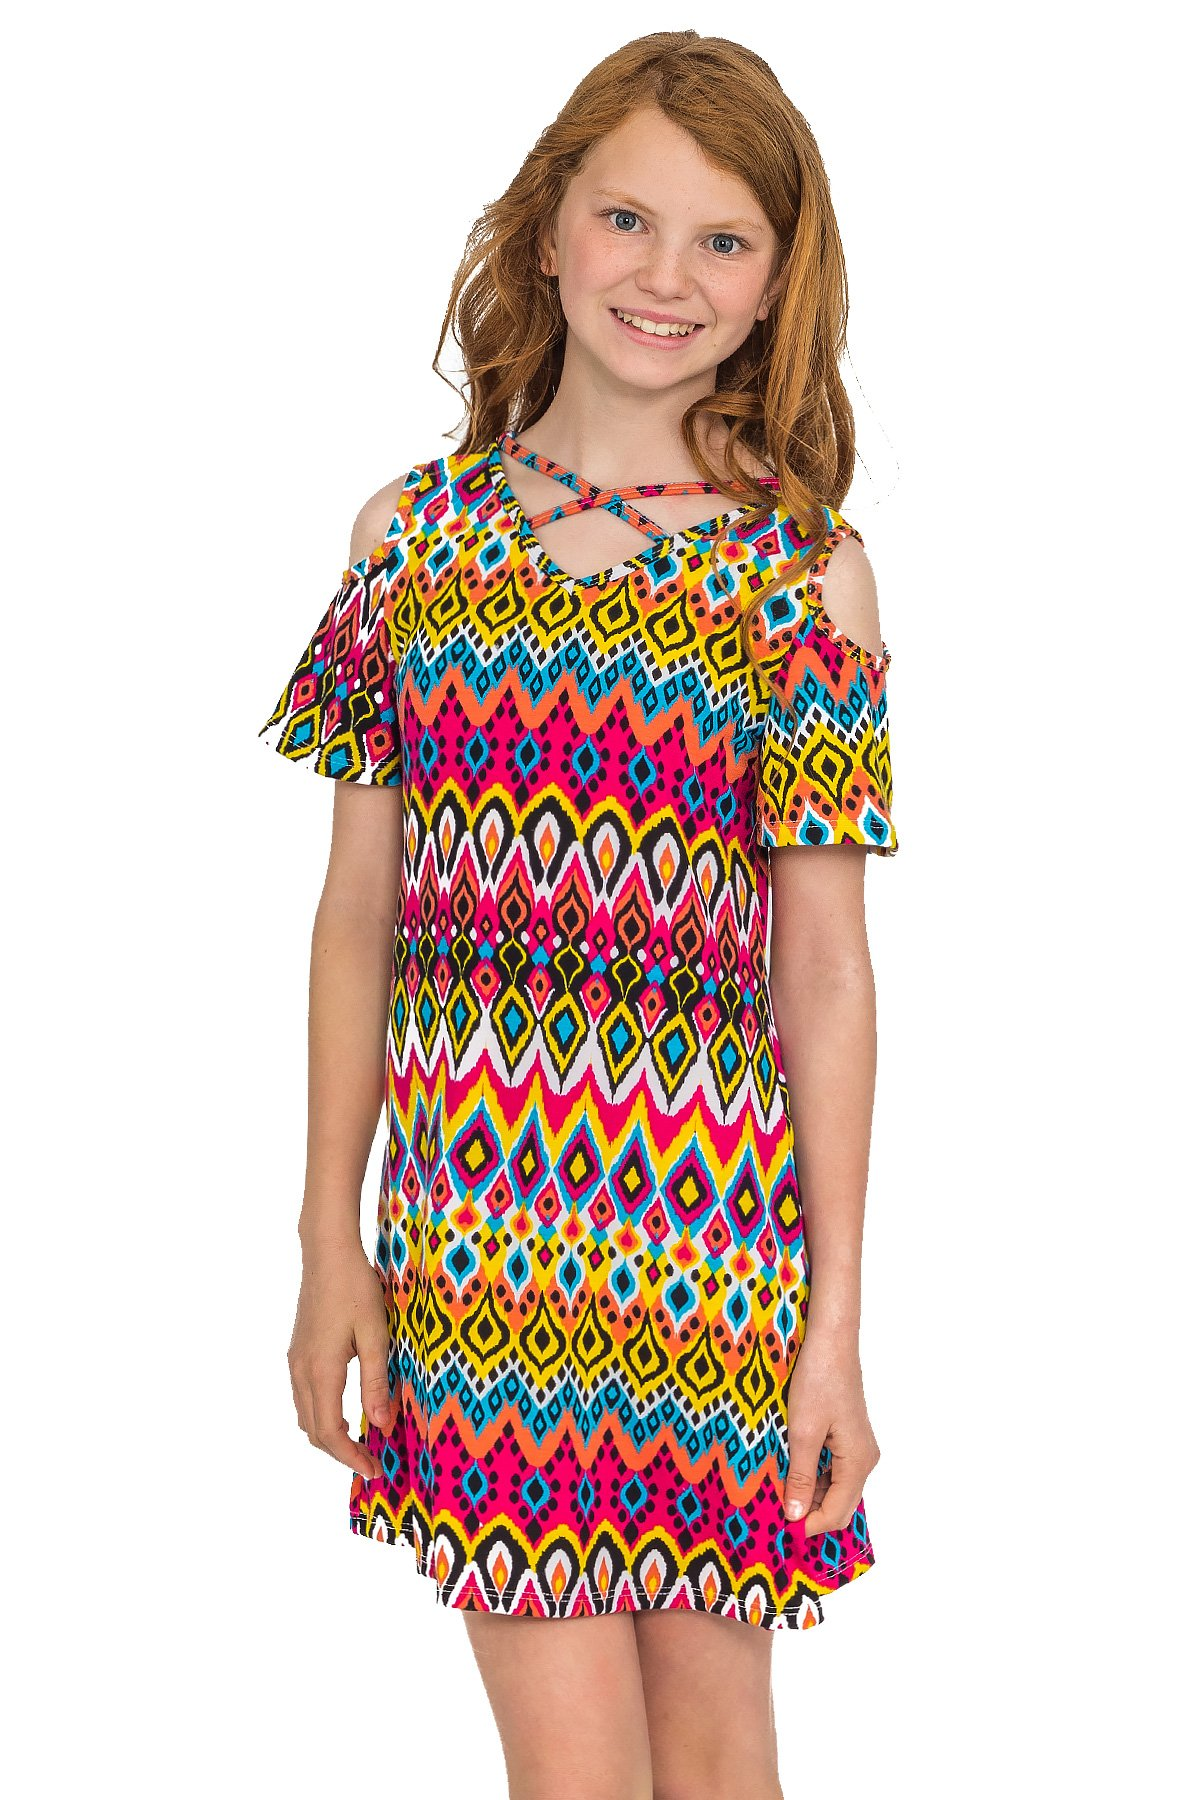 Truly Me Summer Dresses (Many Options), 4-6X, 7-16 (12, Hot Pink Multi)